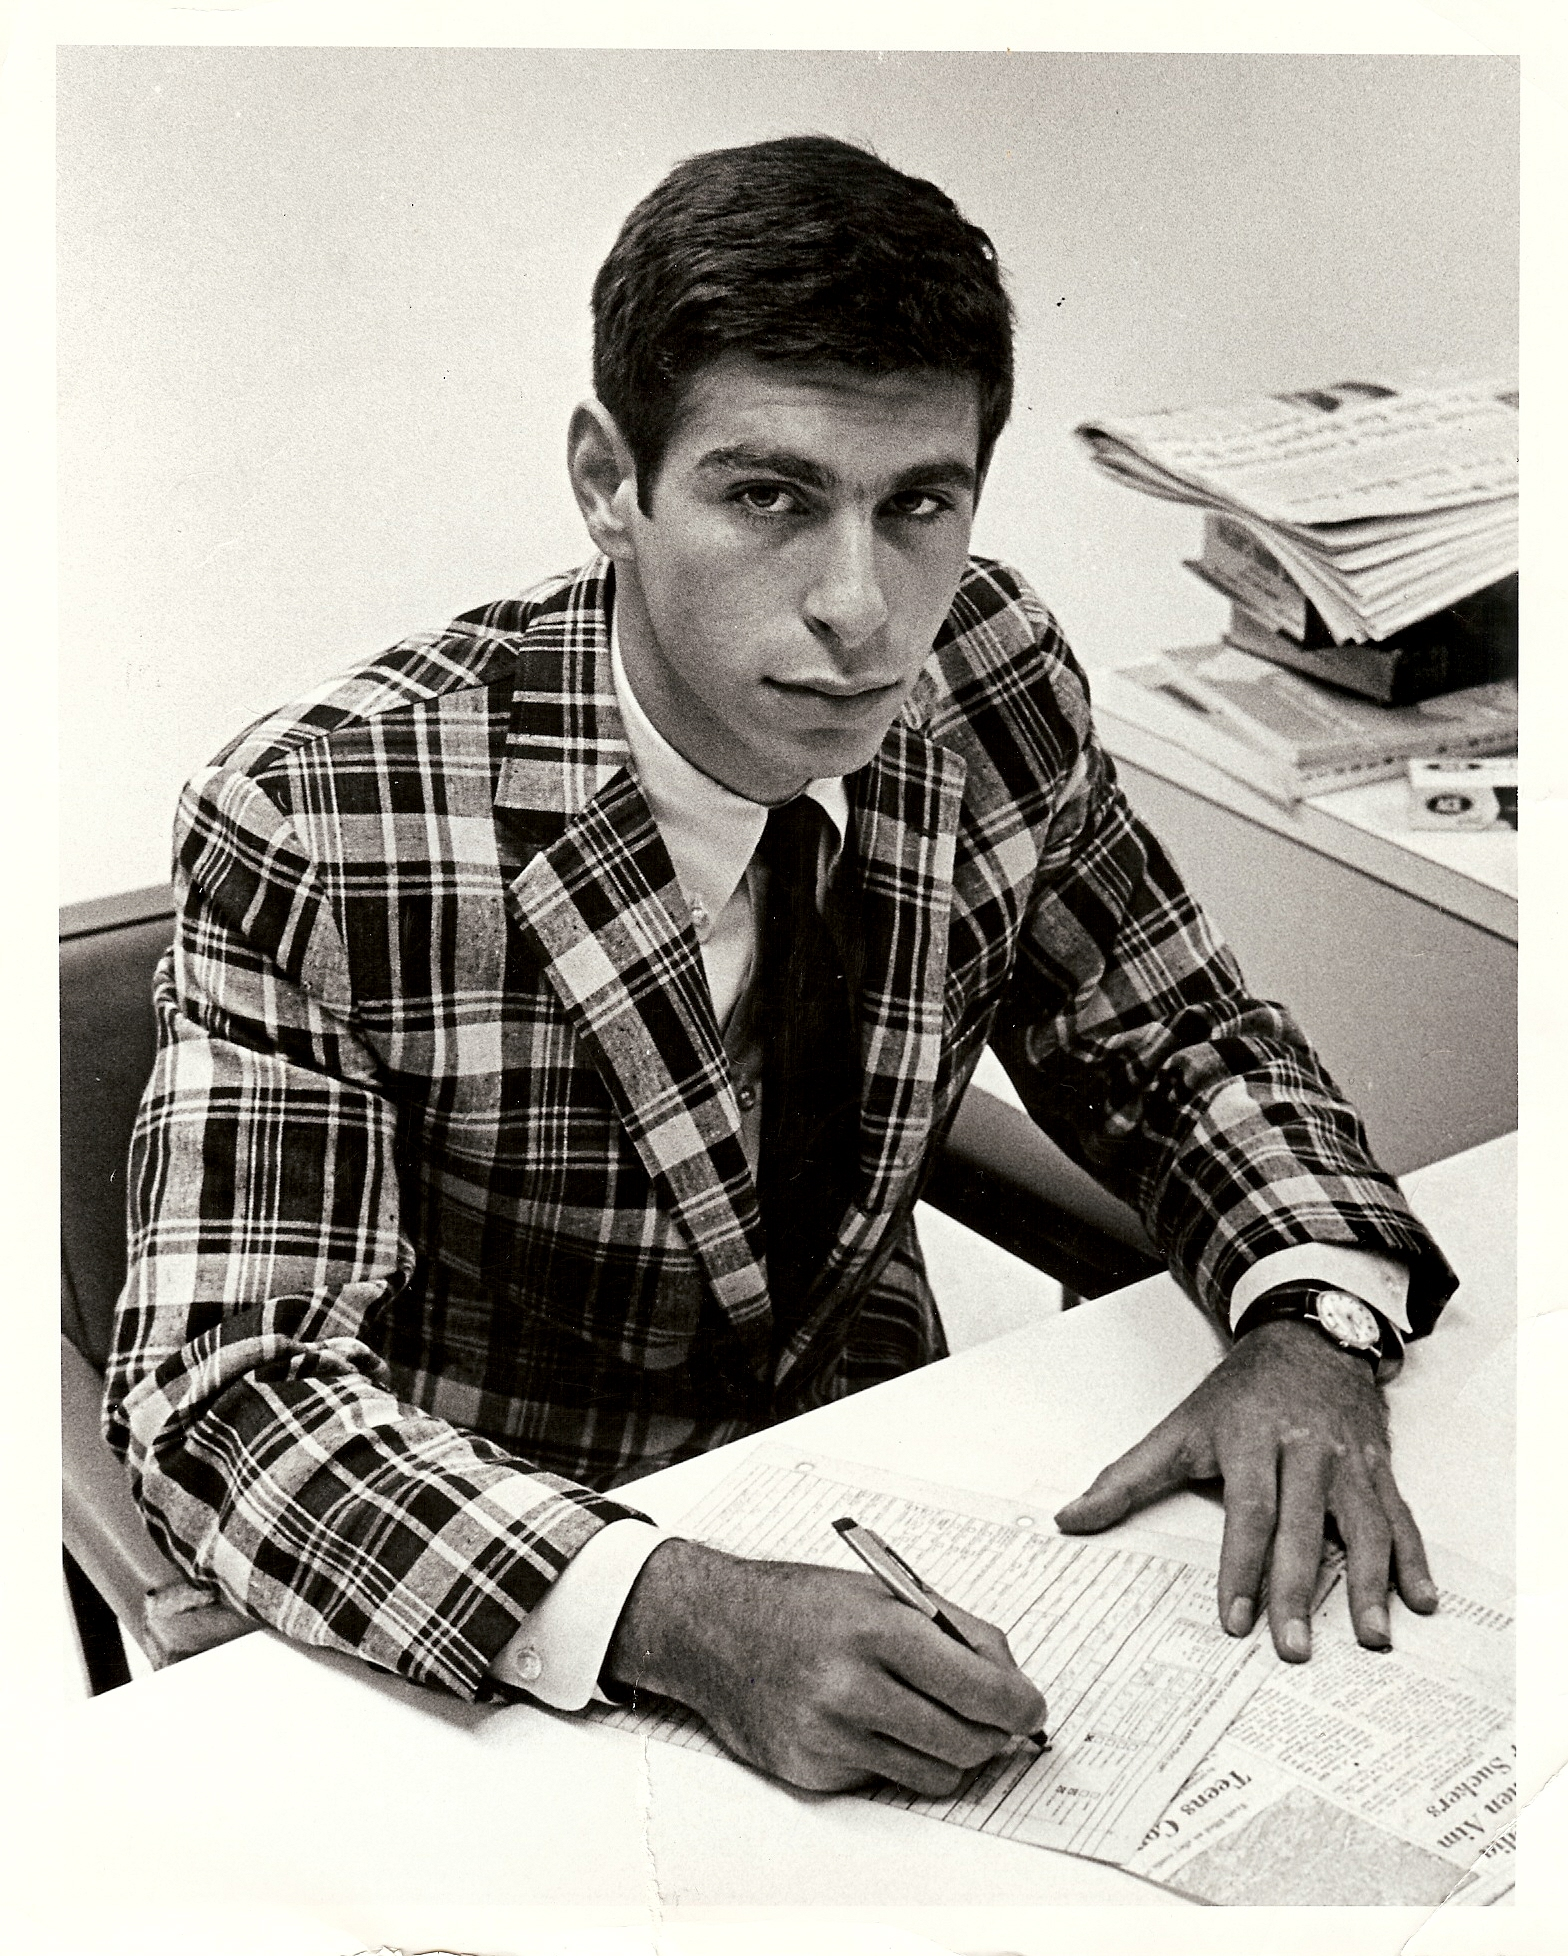 A young Mark Stolorow in a plaid jacket sitting at a desk